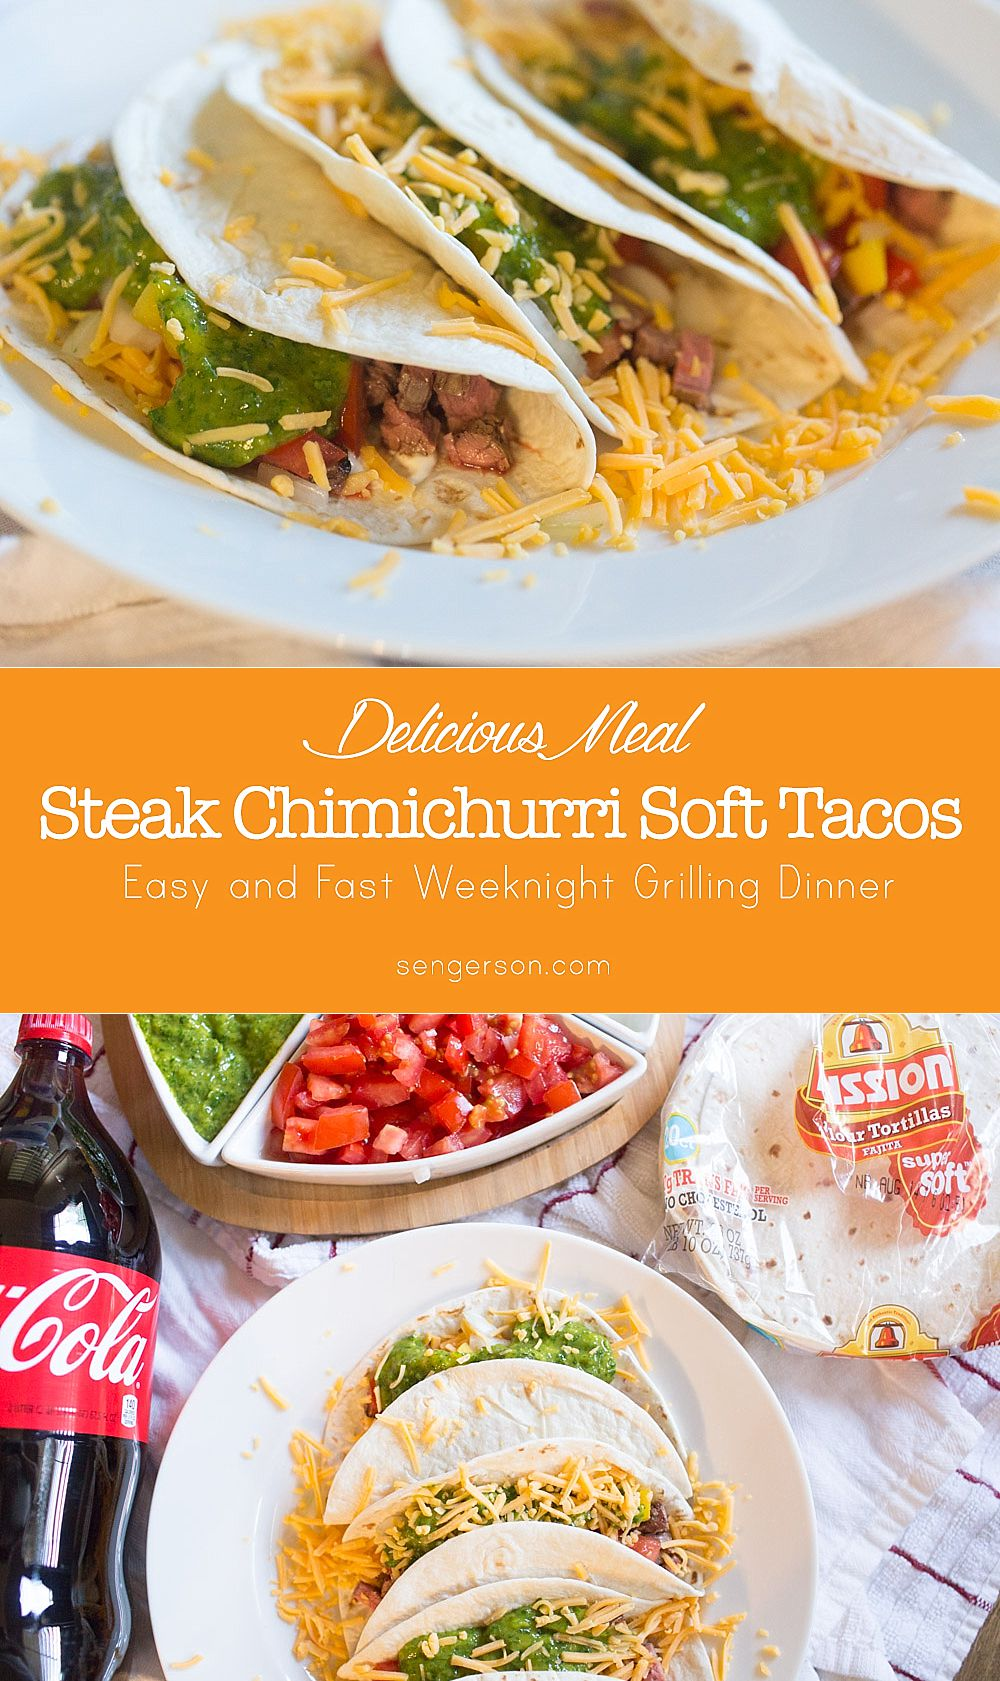 How to Make Easy Chimichurri Sauce for Steak receta recipe | Easy Chimichurri Steak Tacos featured by top US food blogger, Sengerson